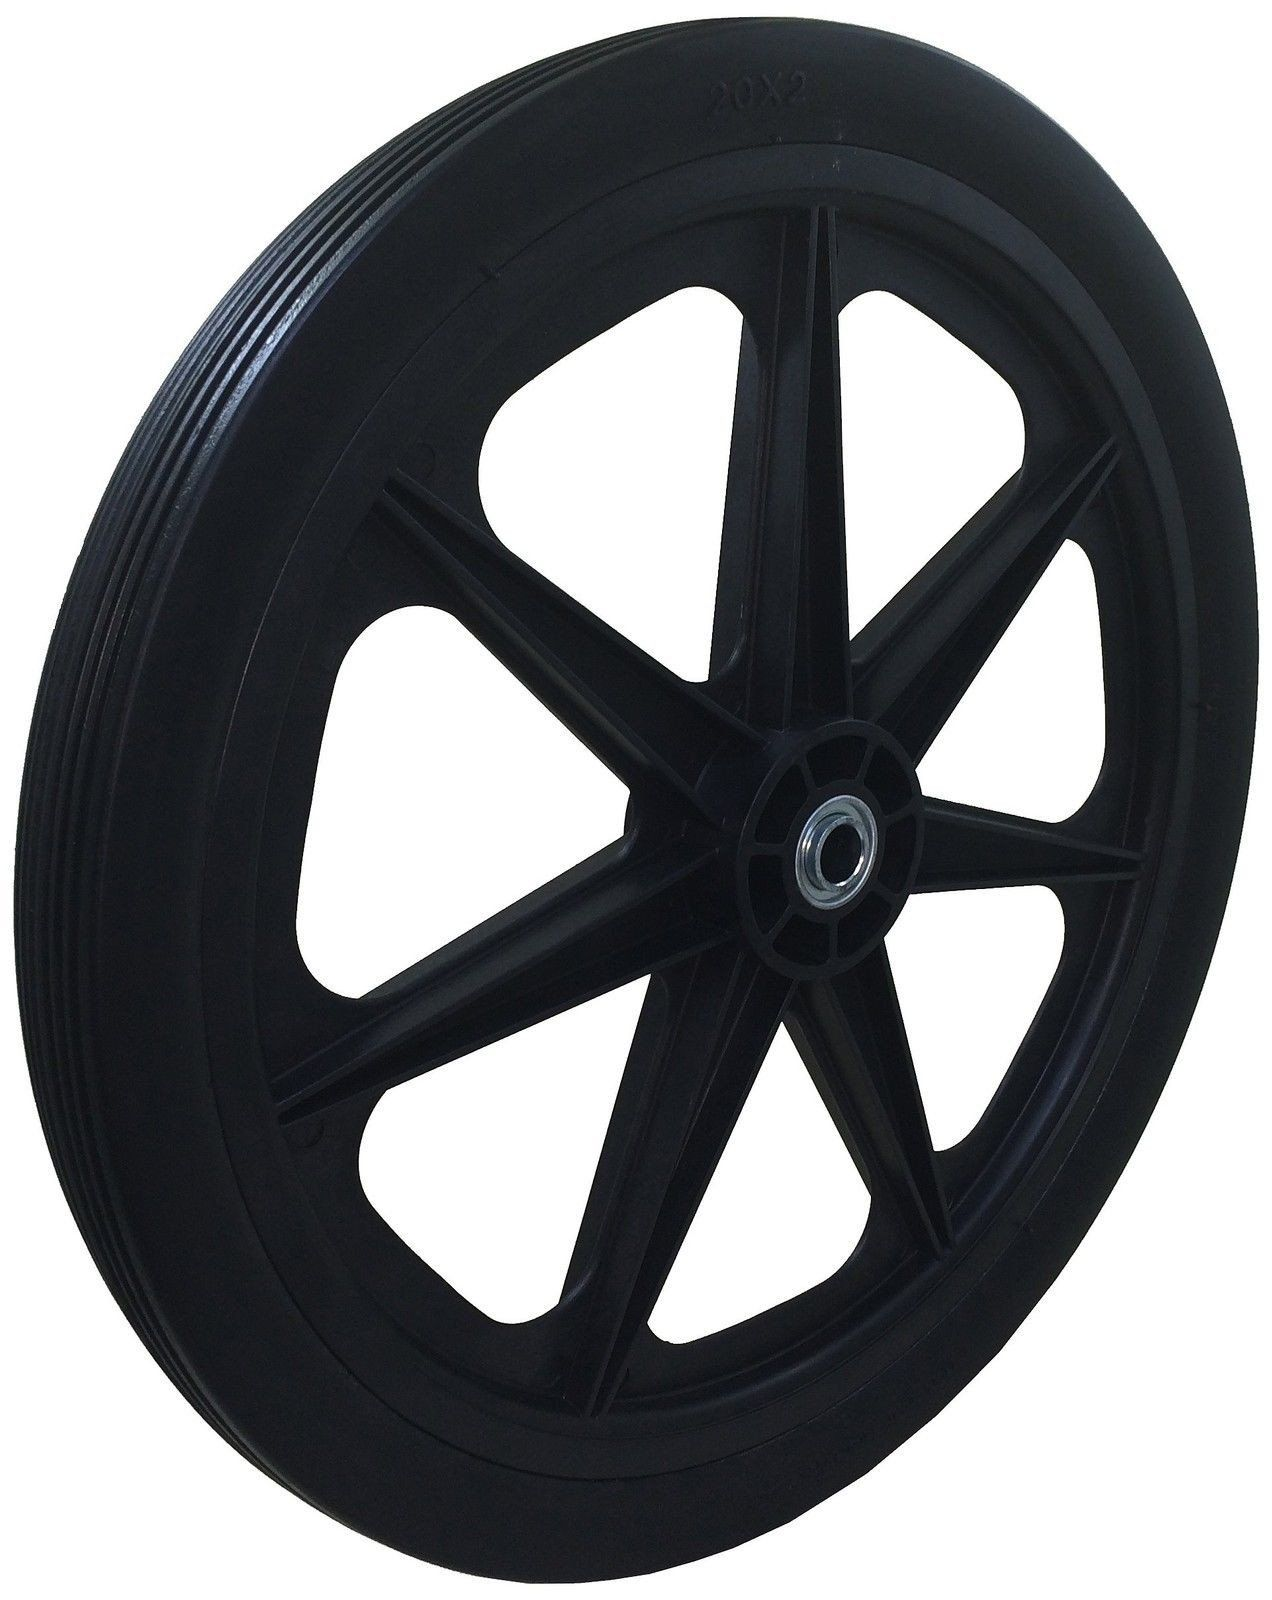 "Marathon 20X2.0"" Flat Free Cart Tire On Plastic Rim 3/4"